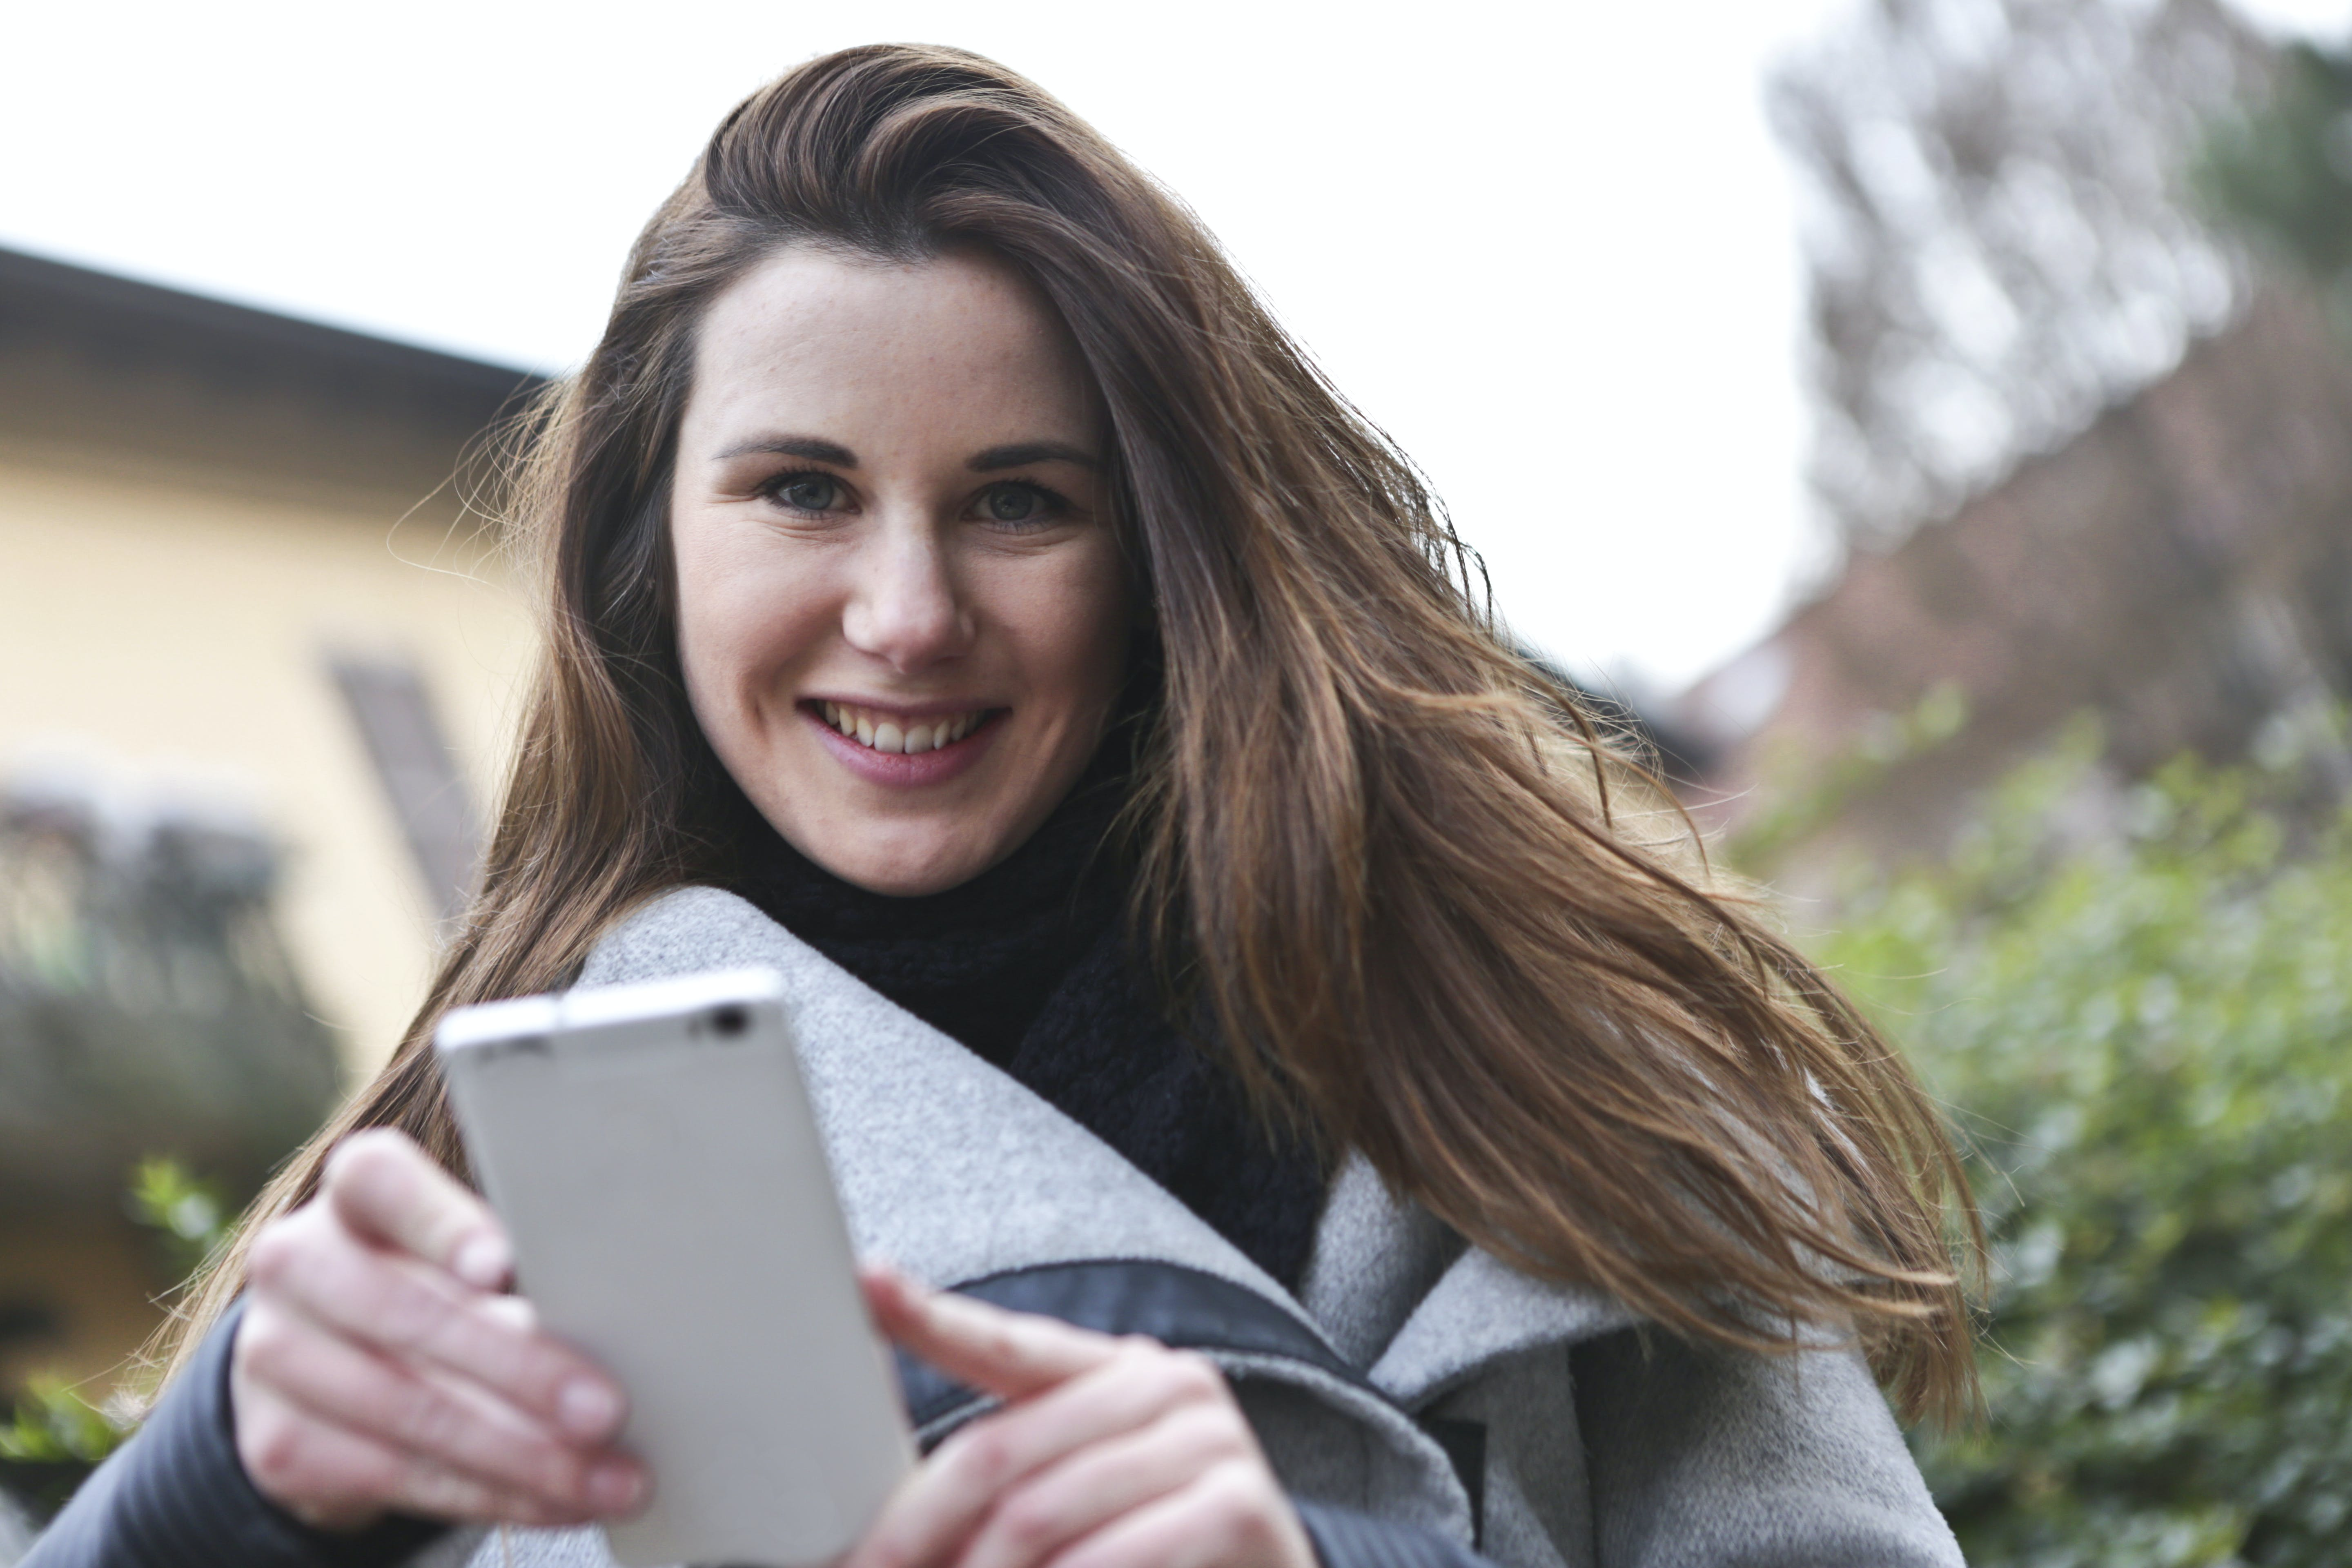 Woman in Gray Coat Holding White Smartphone